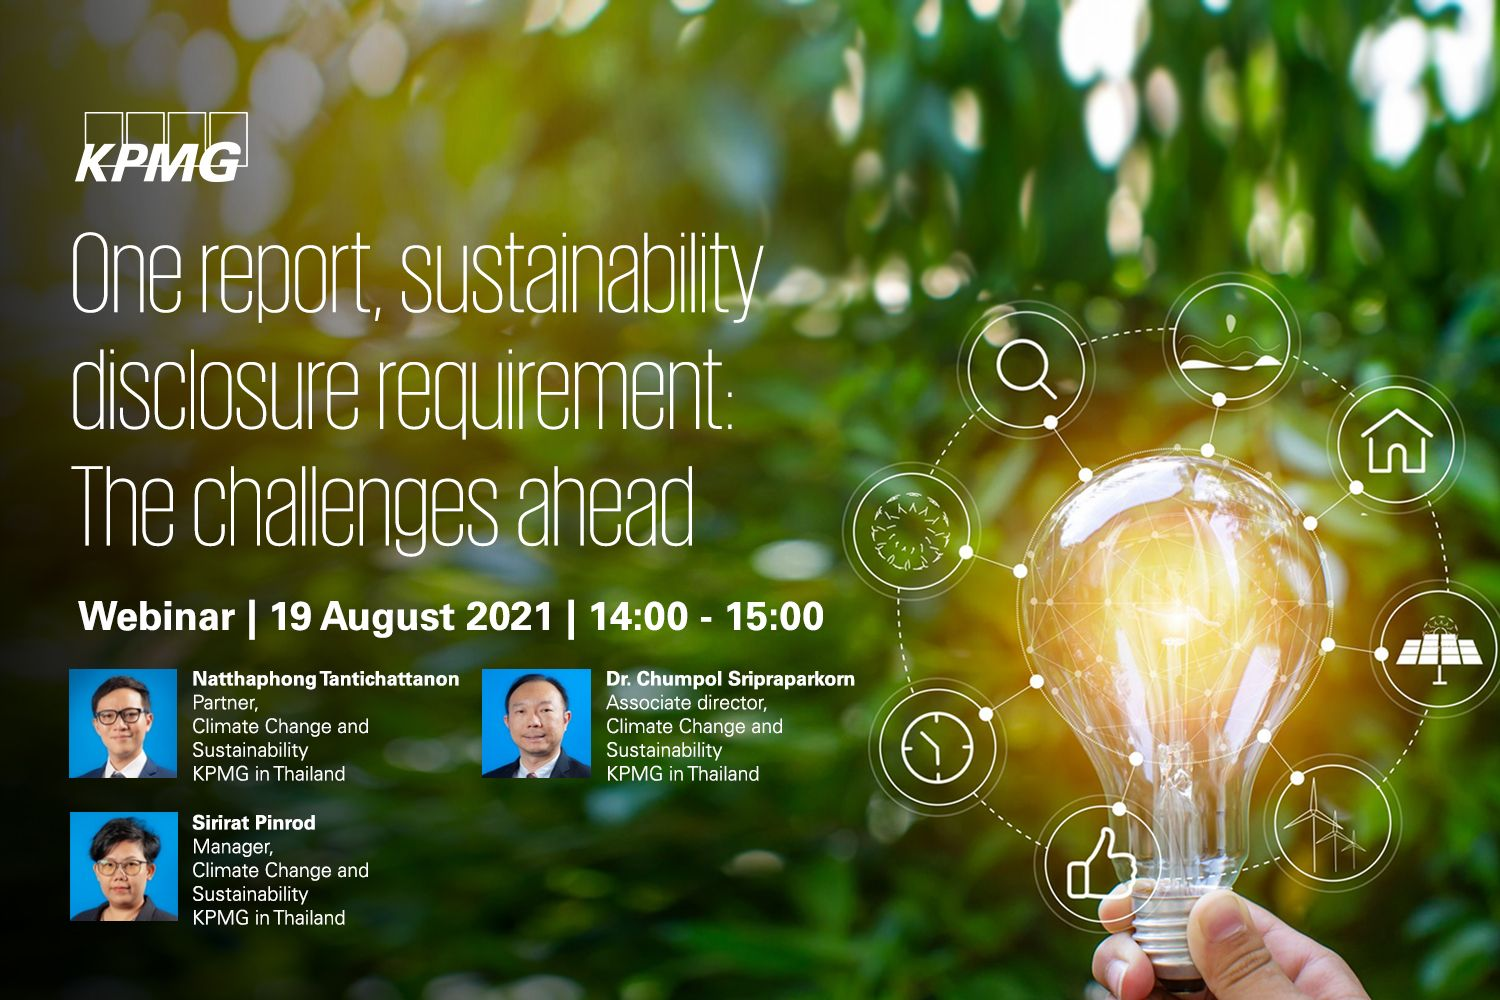 One report, sustainability disclosure requirement: The challenges ahead